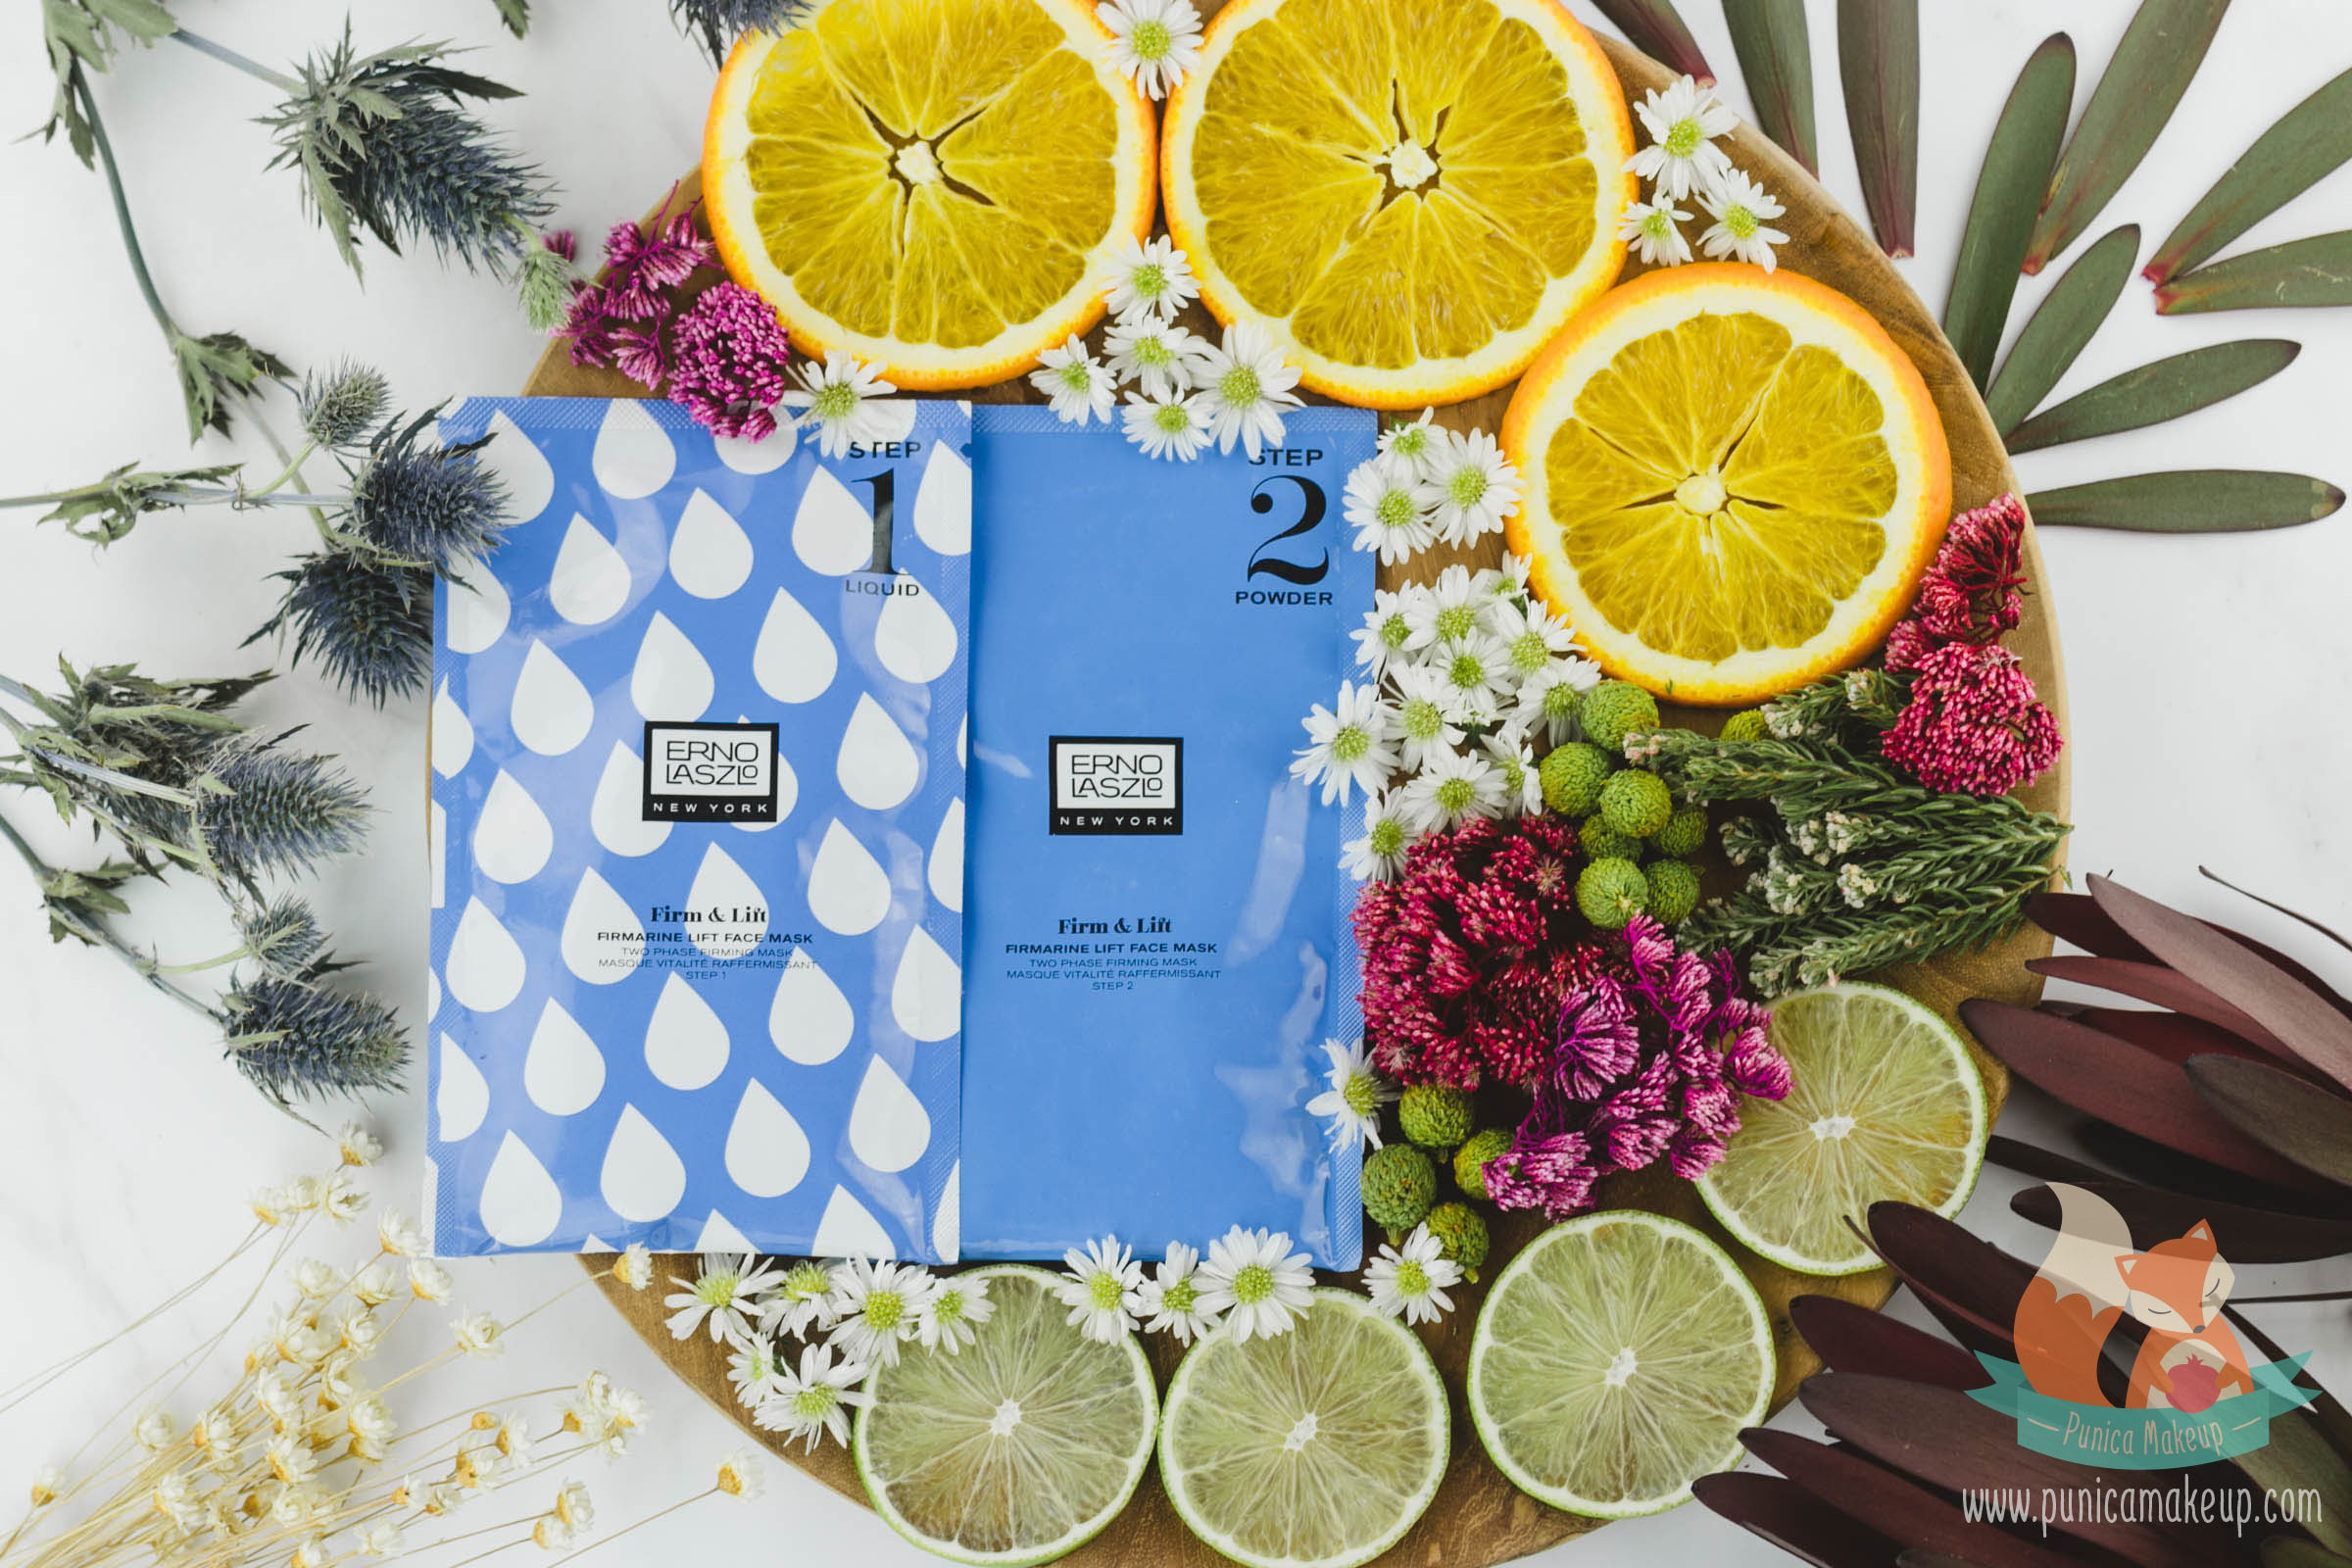 Erno Laszlo Firm Lift Firmarine Lift Face Mask Set Cover